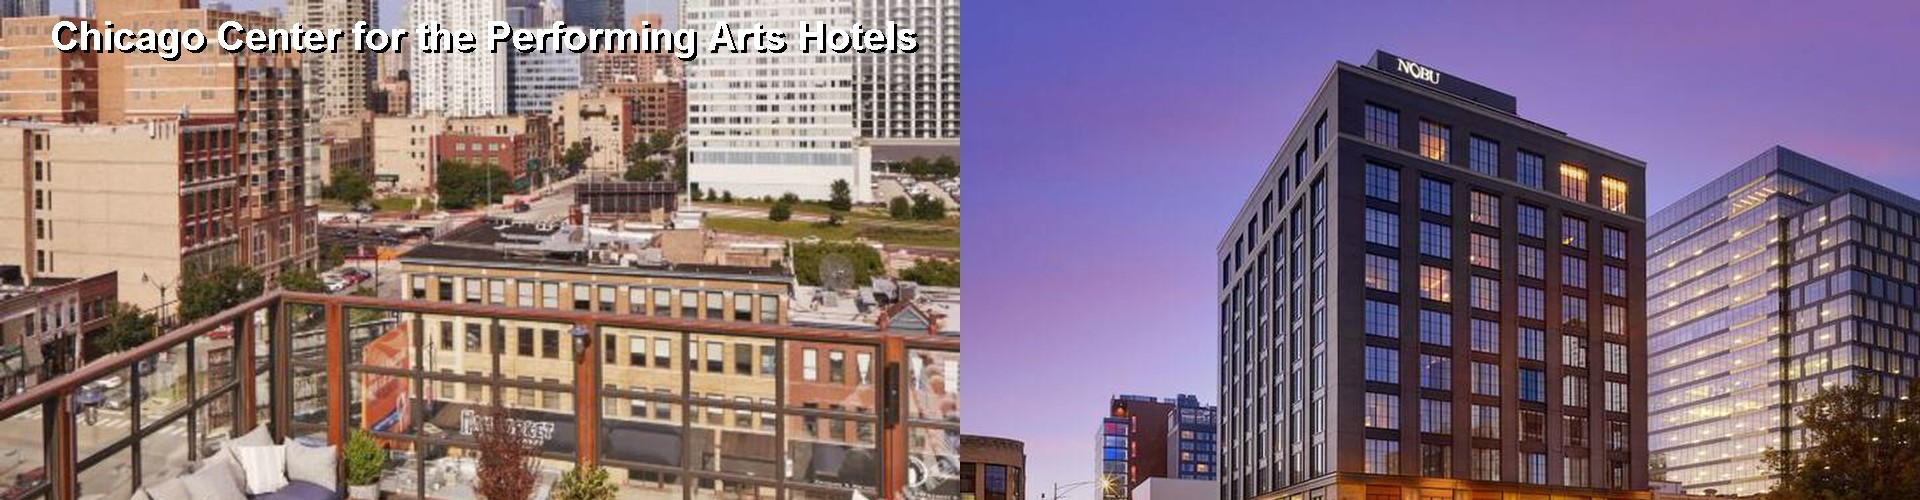 5 Best Hotels near Chicago Center for the Performing Arts